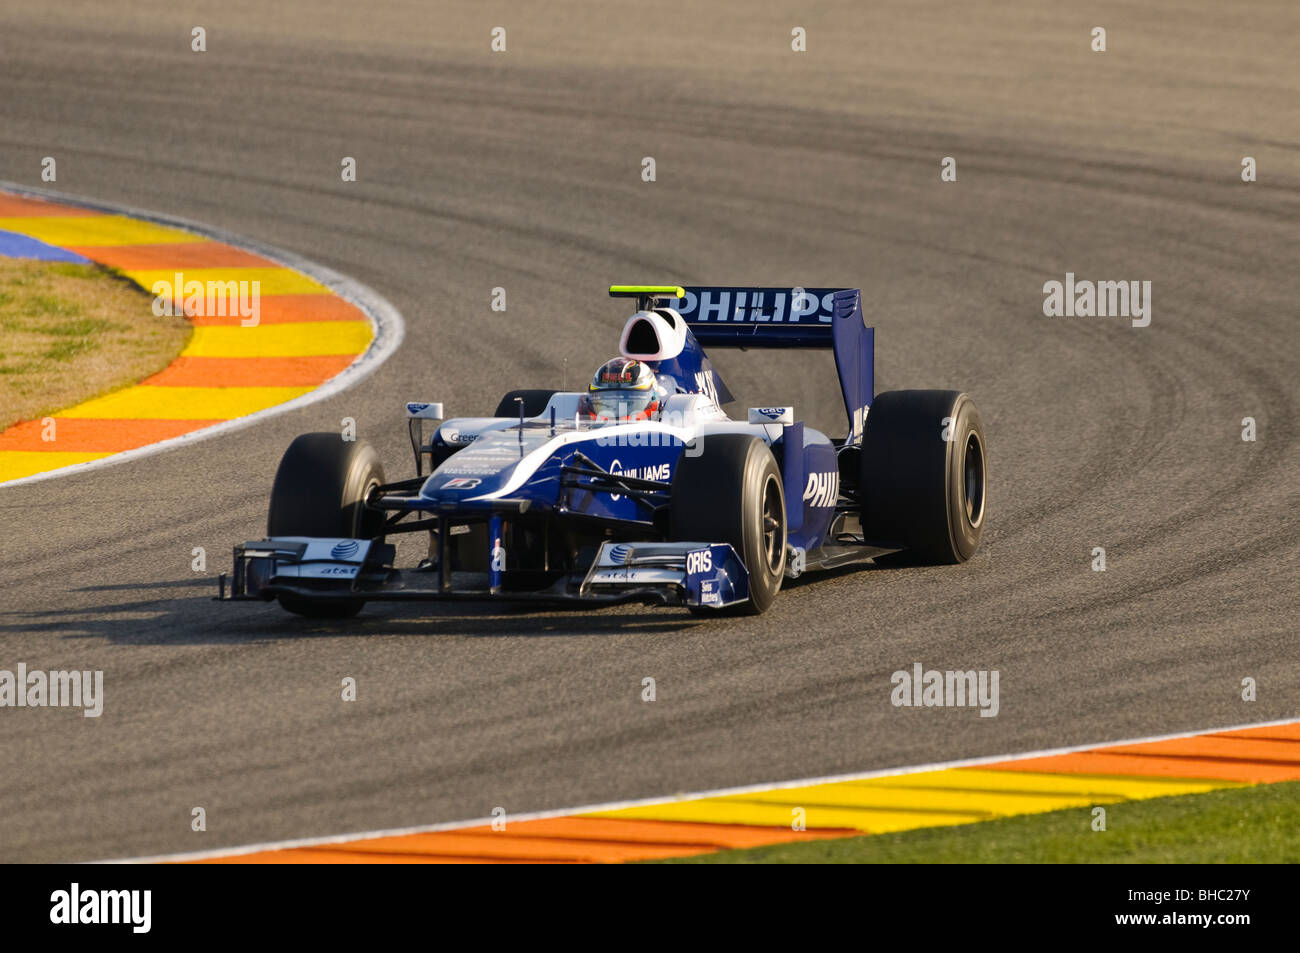 Nico HUELKENBERG (GER) driving the Williams FW31 Formula One racing car in February 2010 - Stock Image